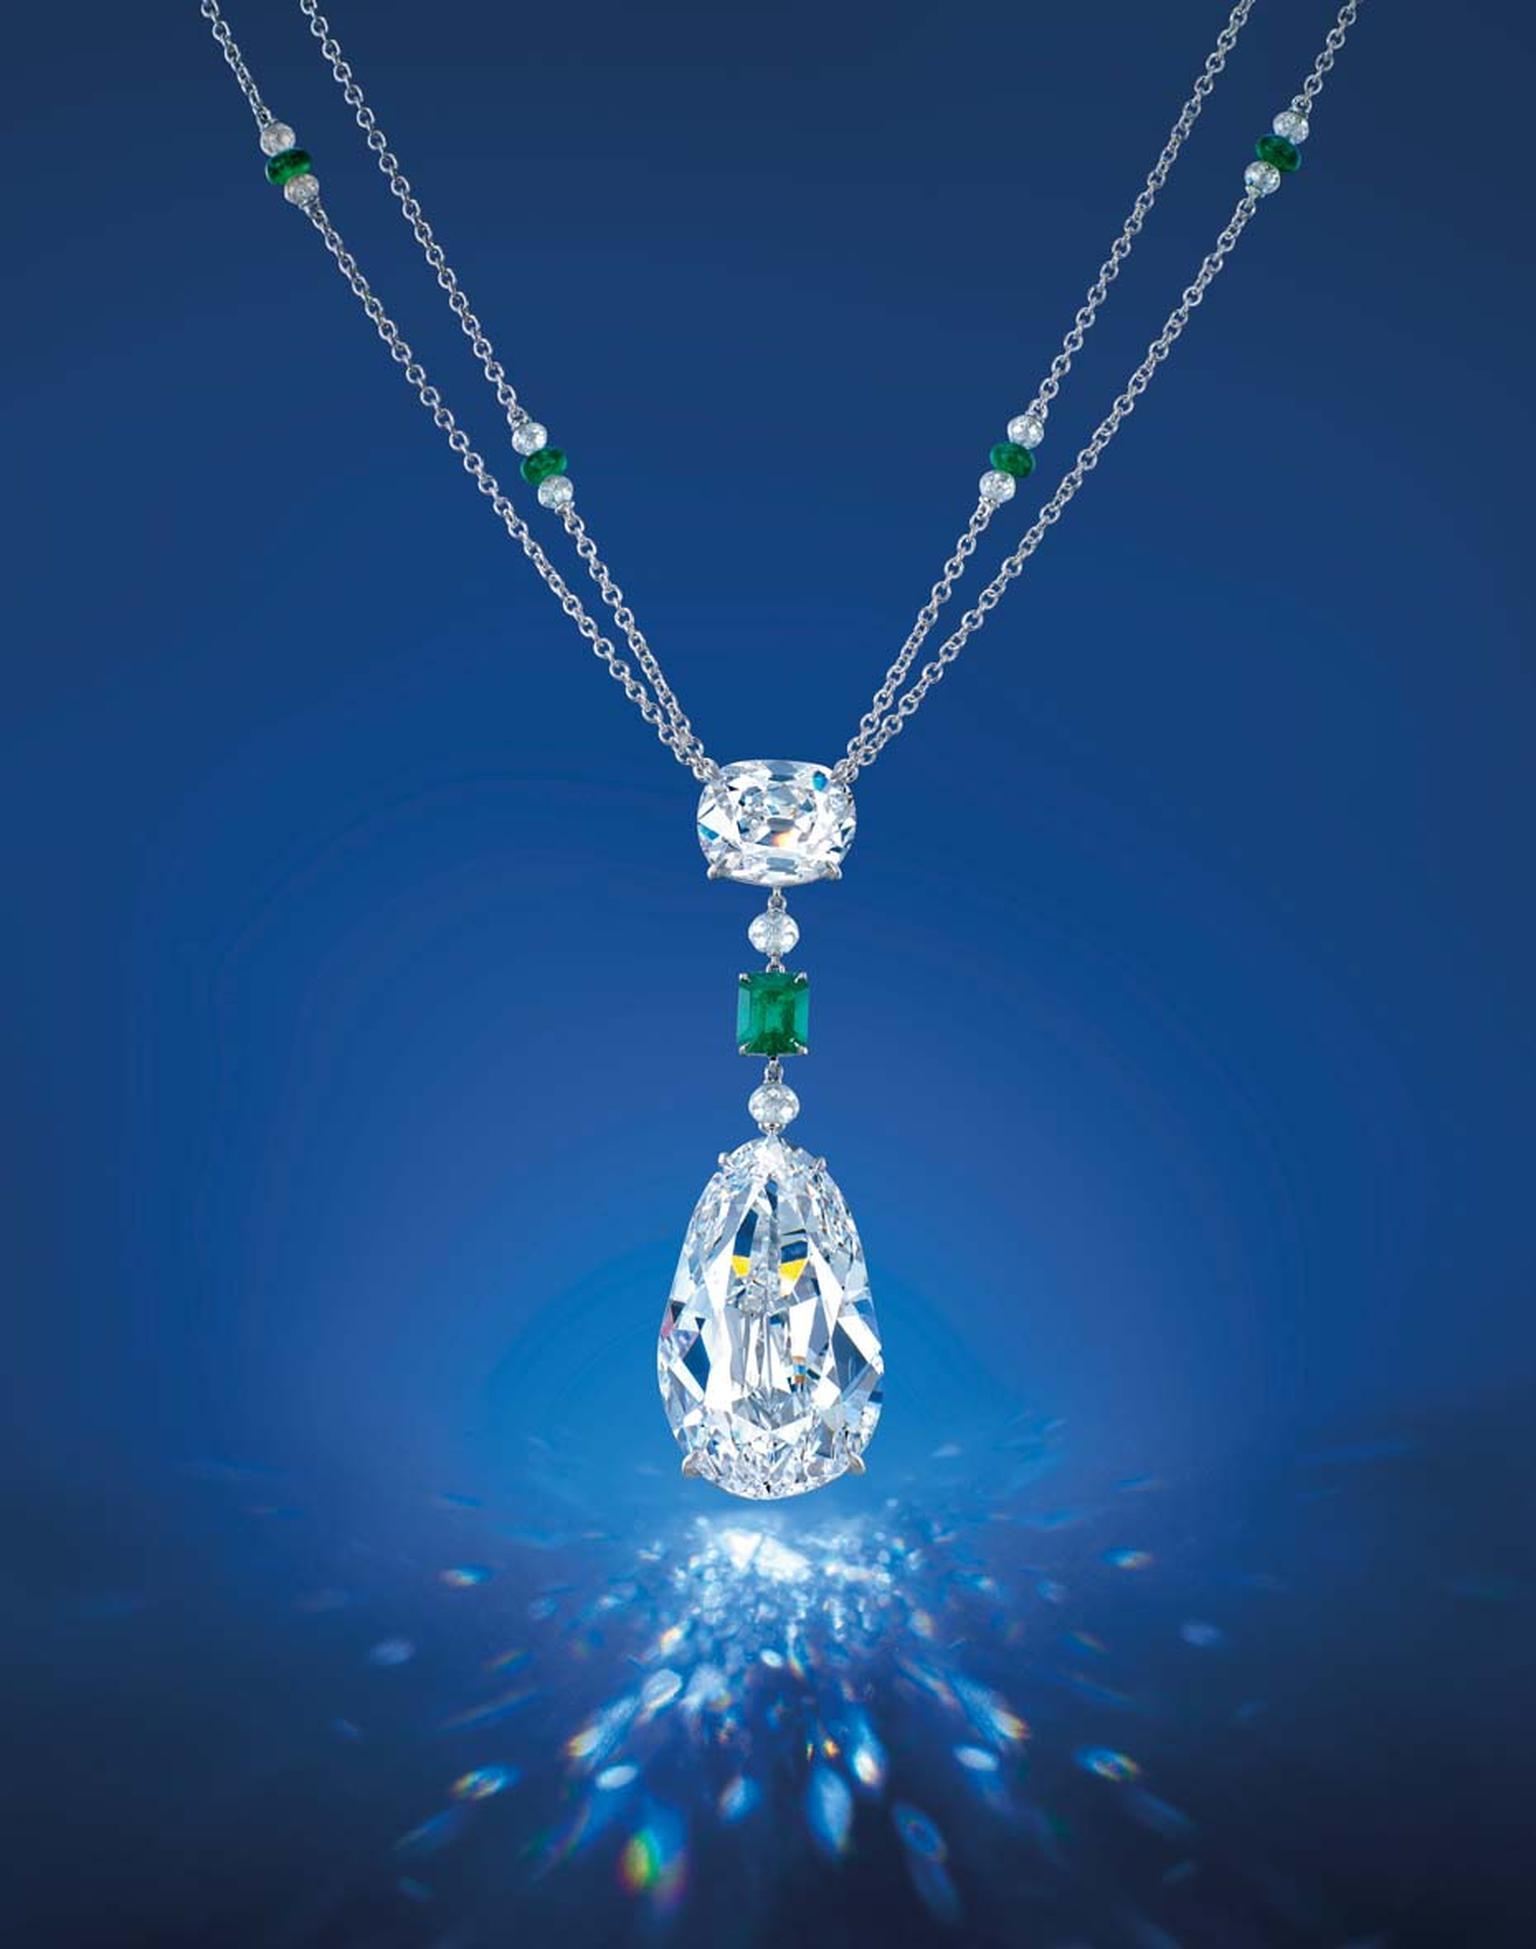 The Eye of Golconda diamond necklace. The Eye of Golconda diamond is the largest Golconda diamond ever to be auctioned in Asia, with a pre-sale estimate of US$8.5-10million